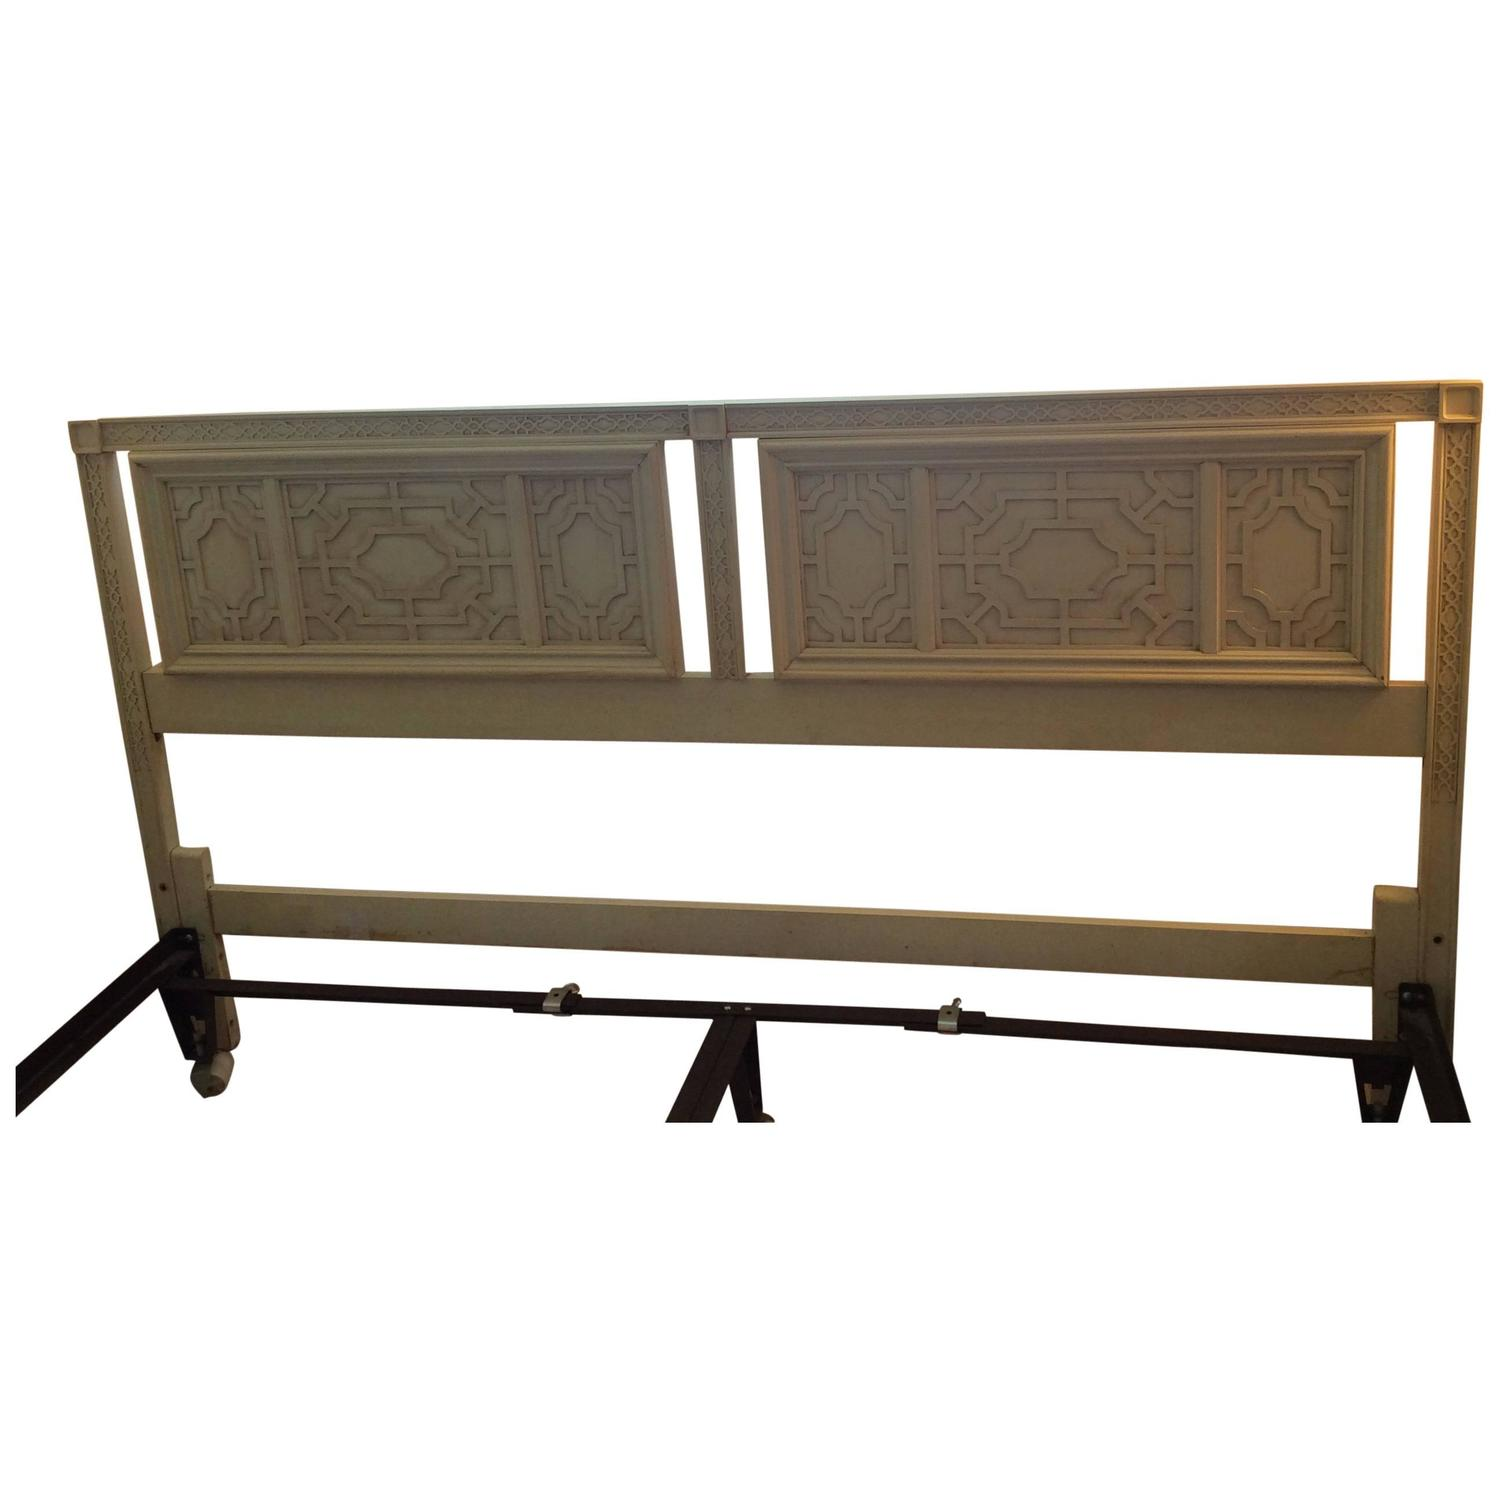 Thomasville Headboard Vintage King Size Fretwork Chinese Chippendale Bed For At 1stdibs